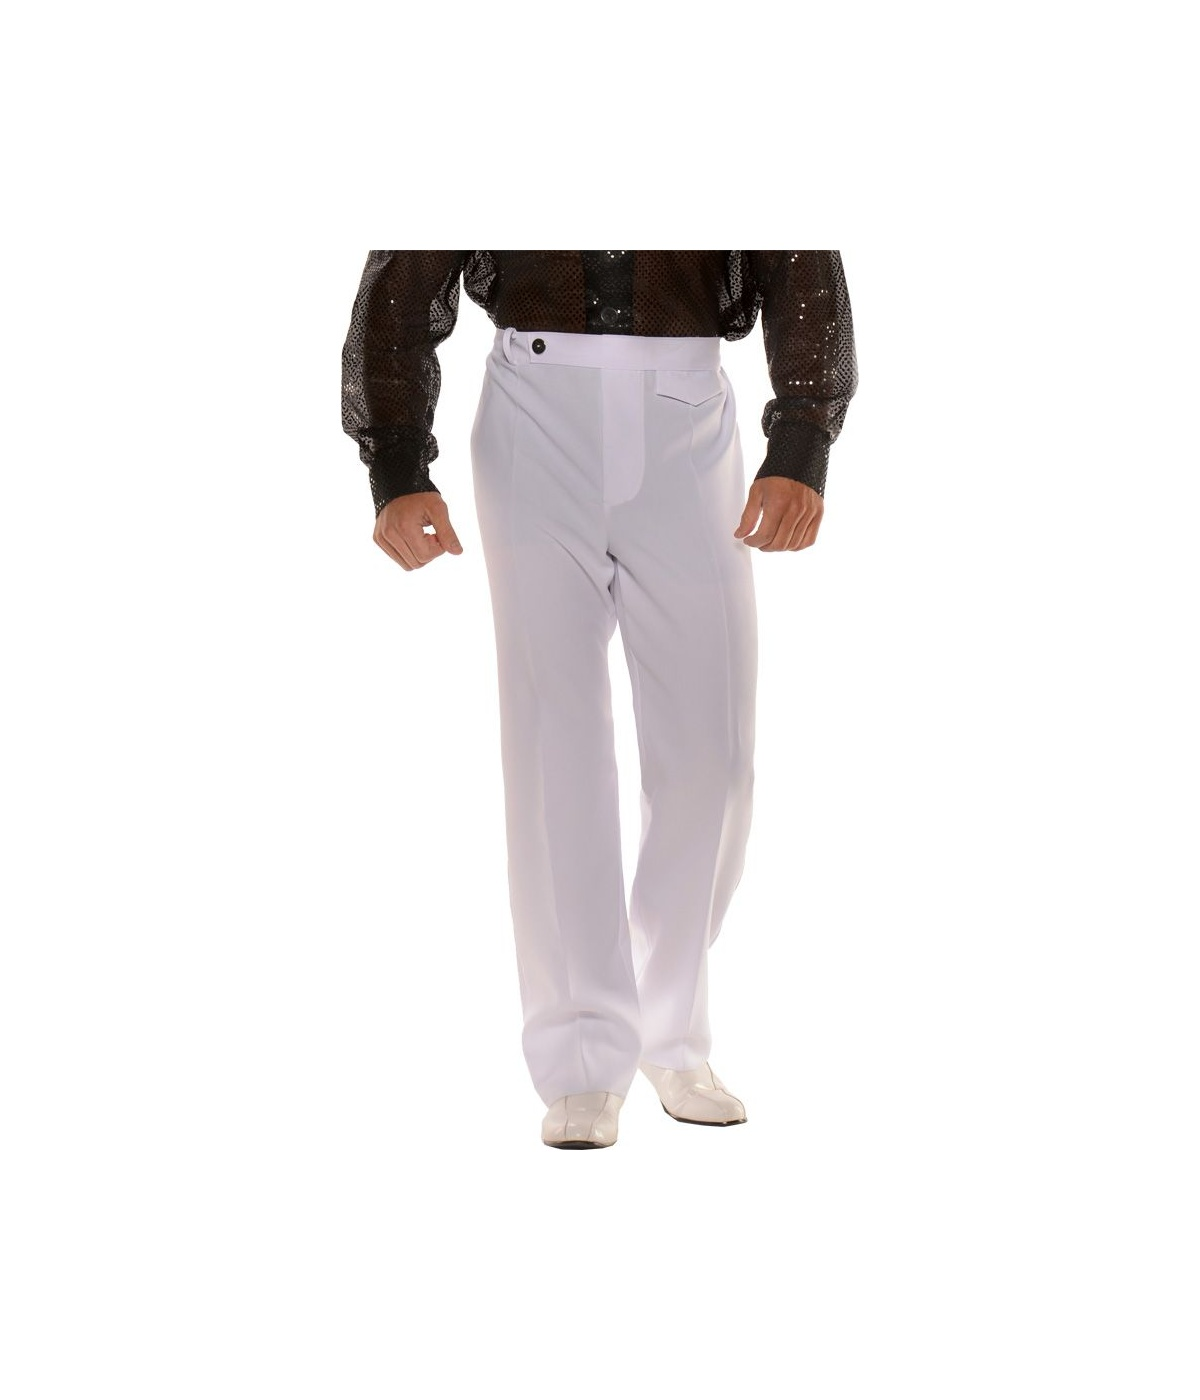 Mens White Disco Pants Costume